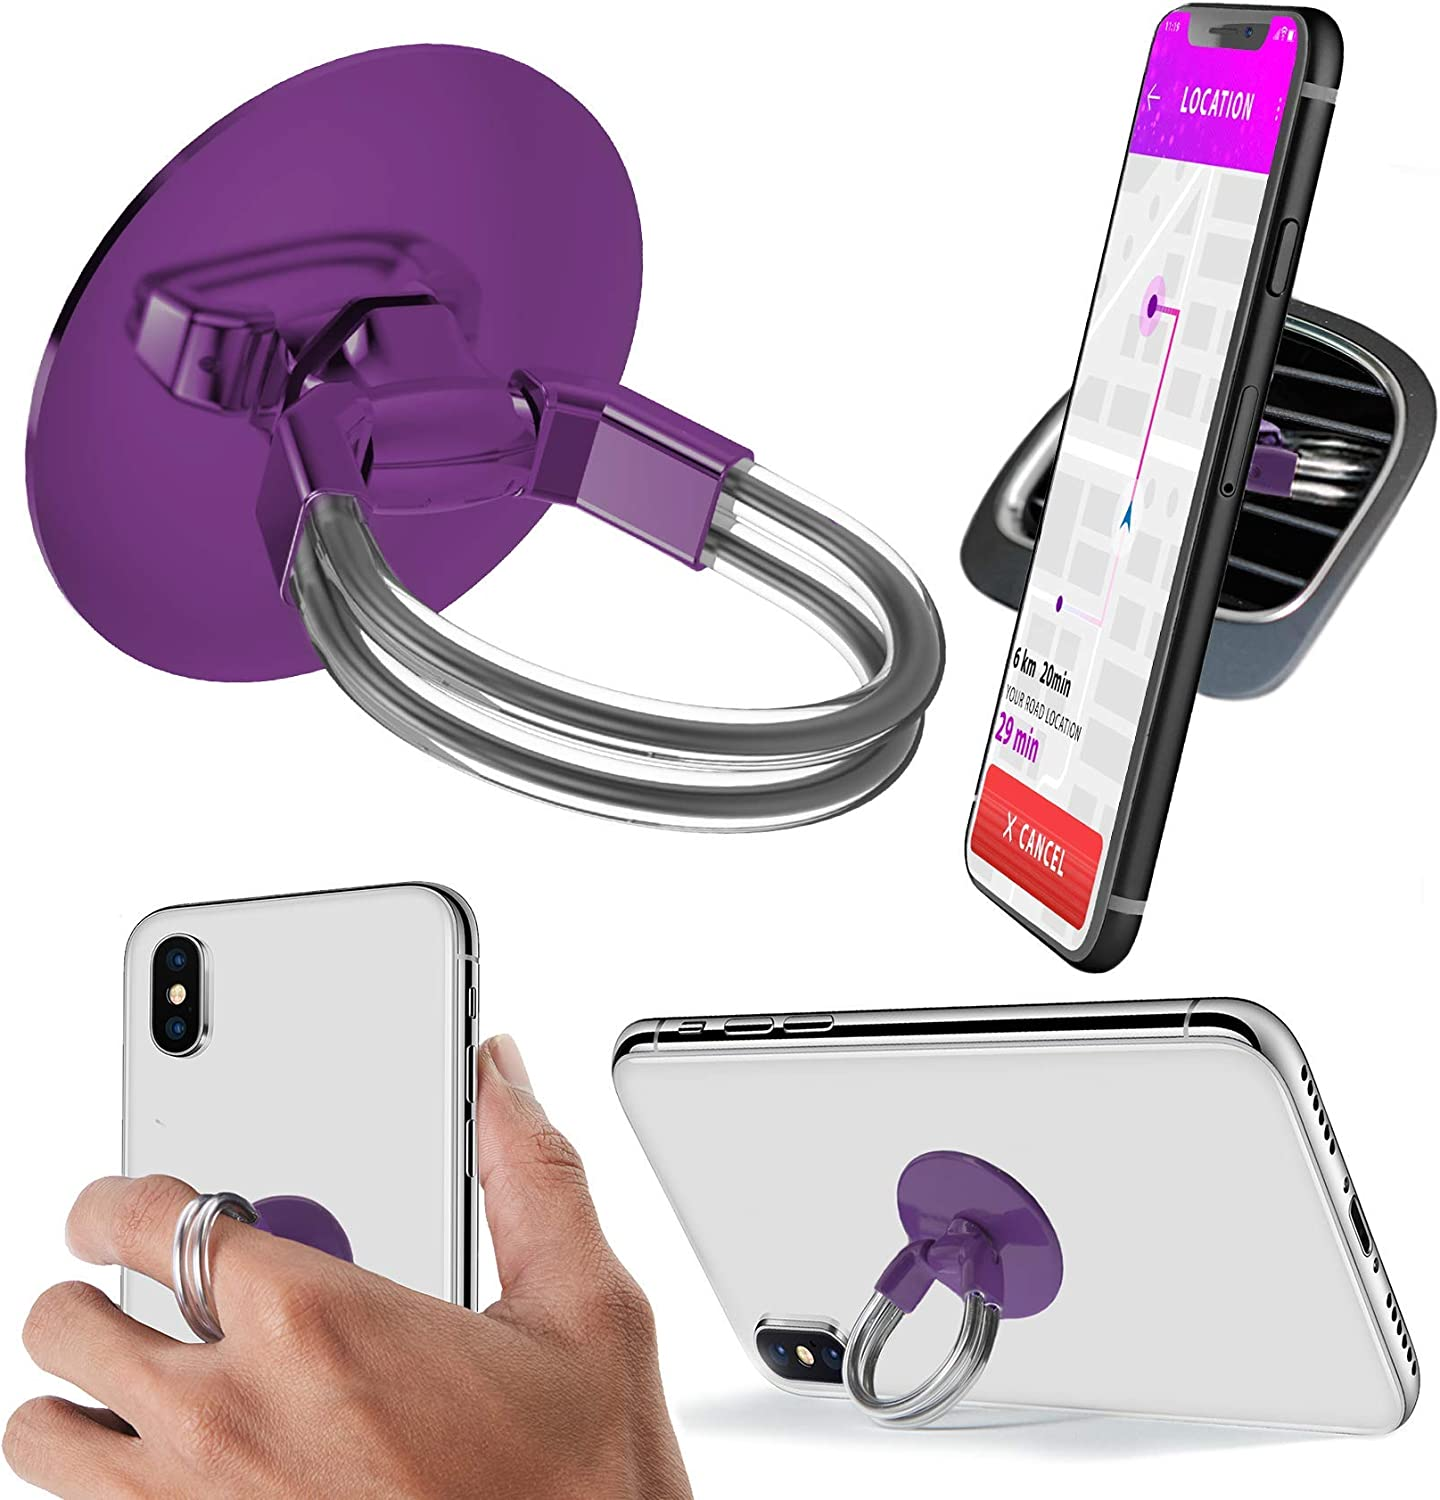 Aduro Phone Ring Holder [3-in-1] - Phone Ring, Phone Stand, Phone Car Vent Mount, Finger Grip Phone Holder for All iPhone, Samsung Galaxy (Purple)